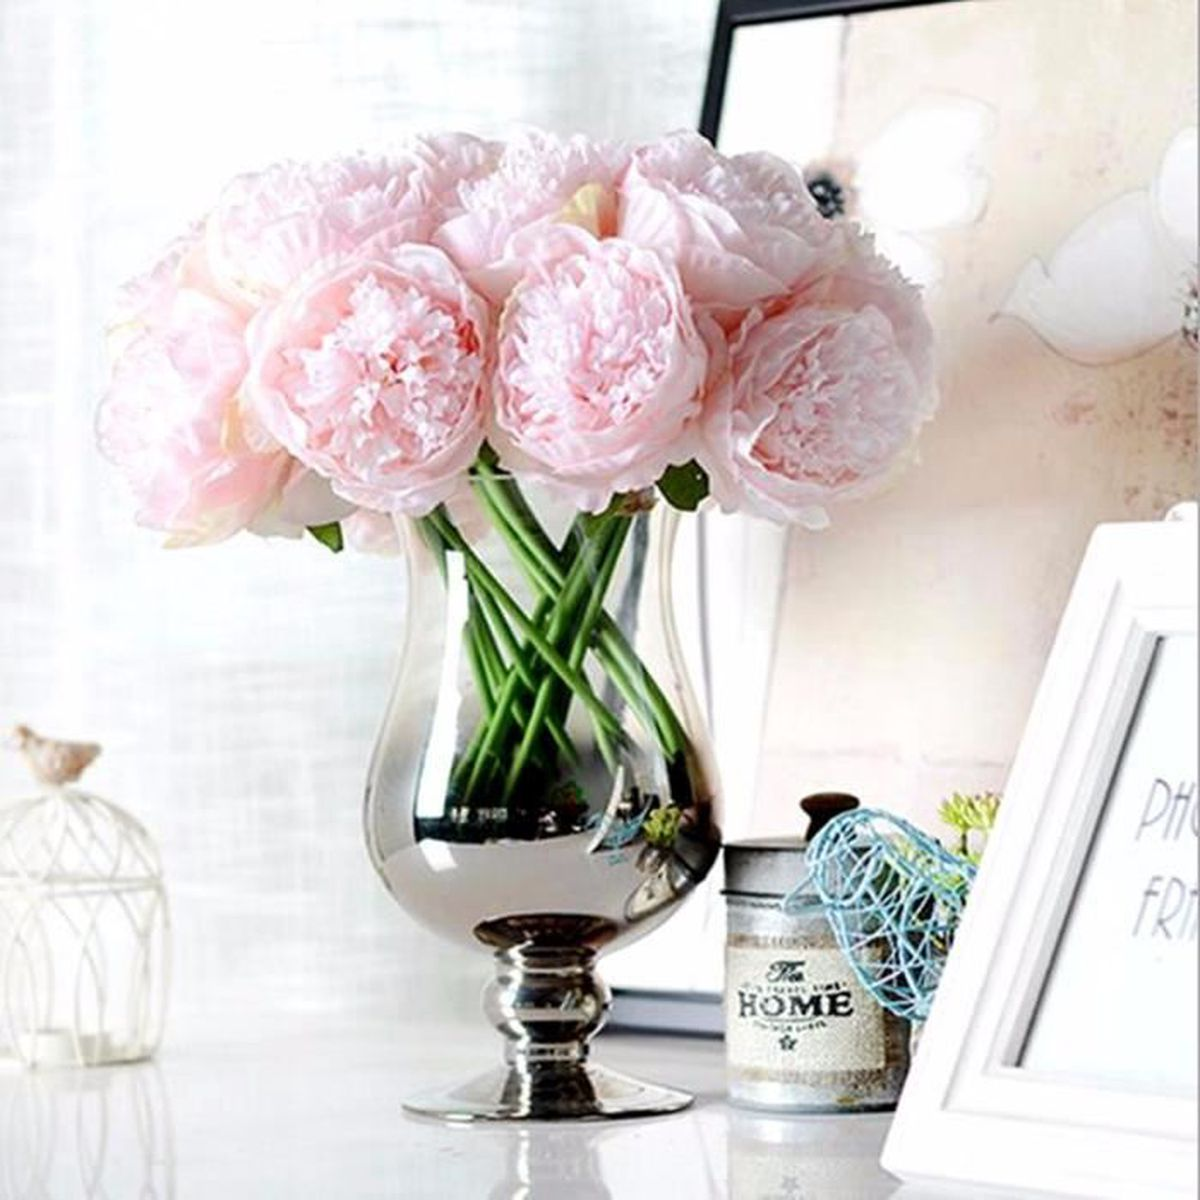 artificielle pivoine plante bouquet de fleur soie pr d cor salon jardin mariage rose clair. Black Bedroom Furniture Sets. Home Design Ideas